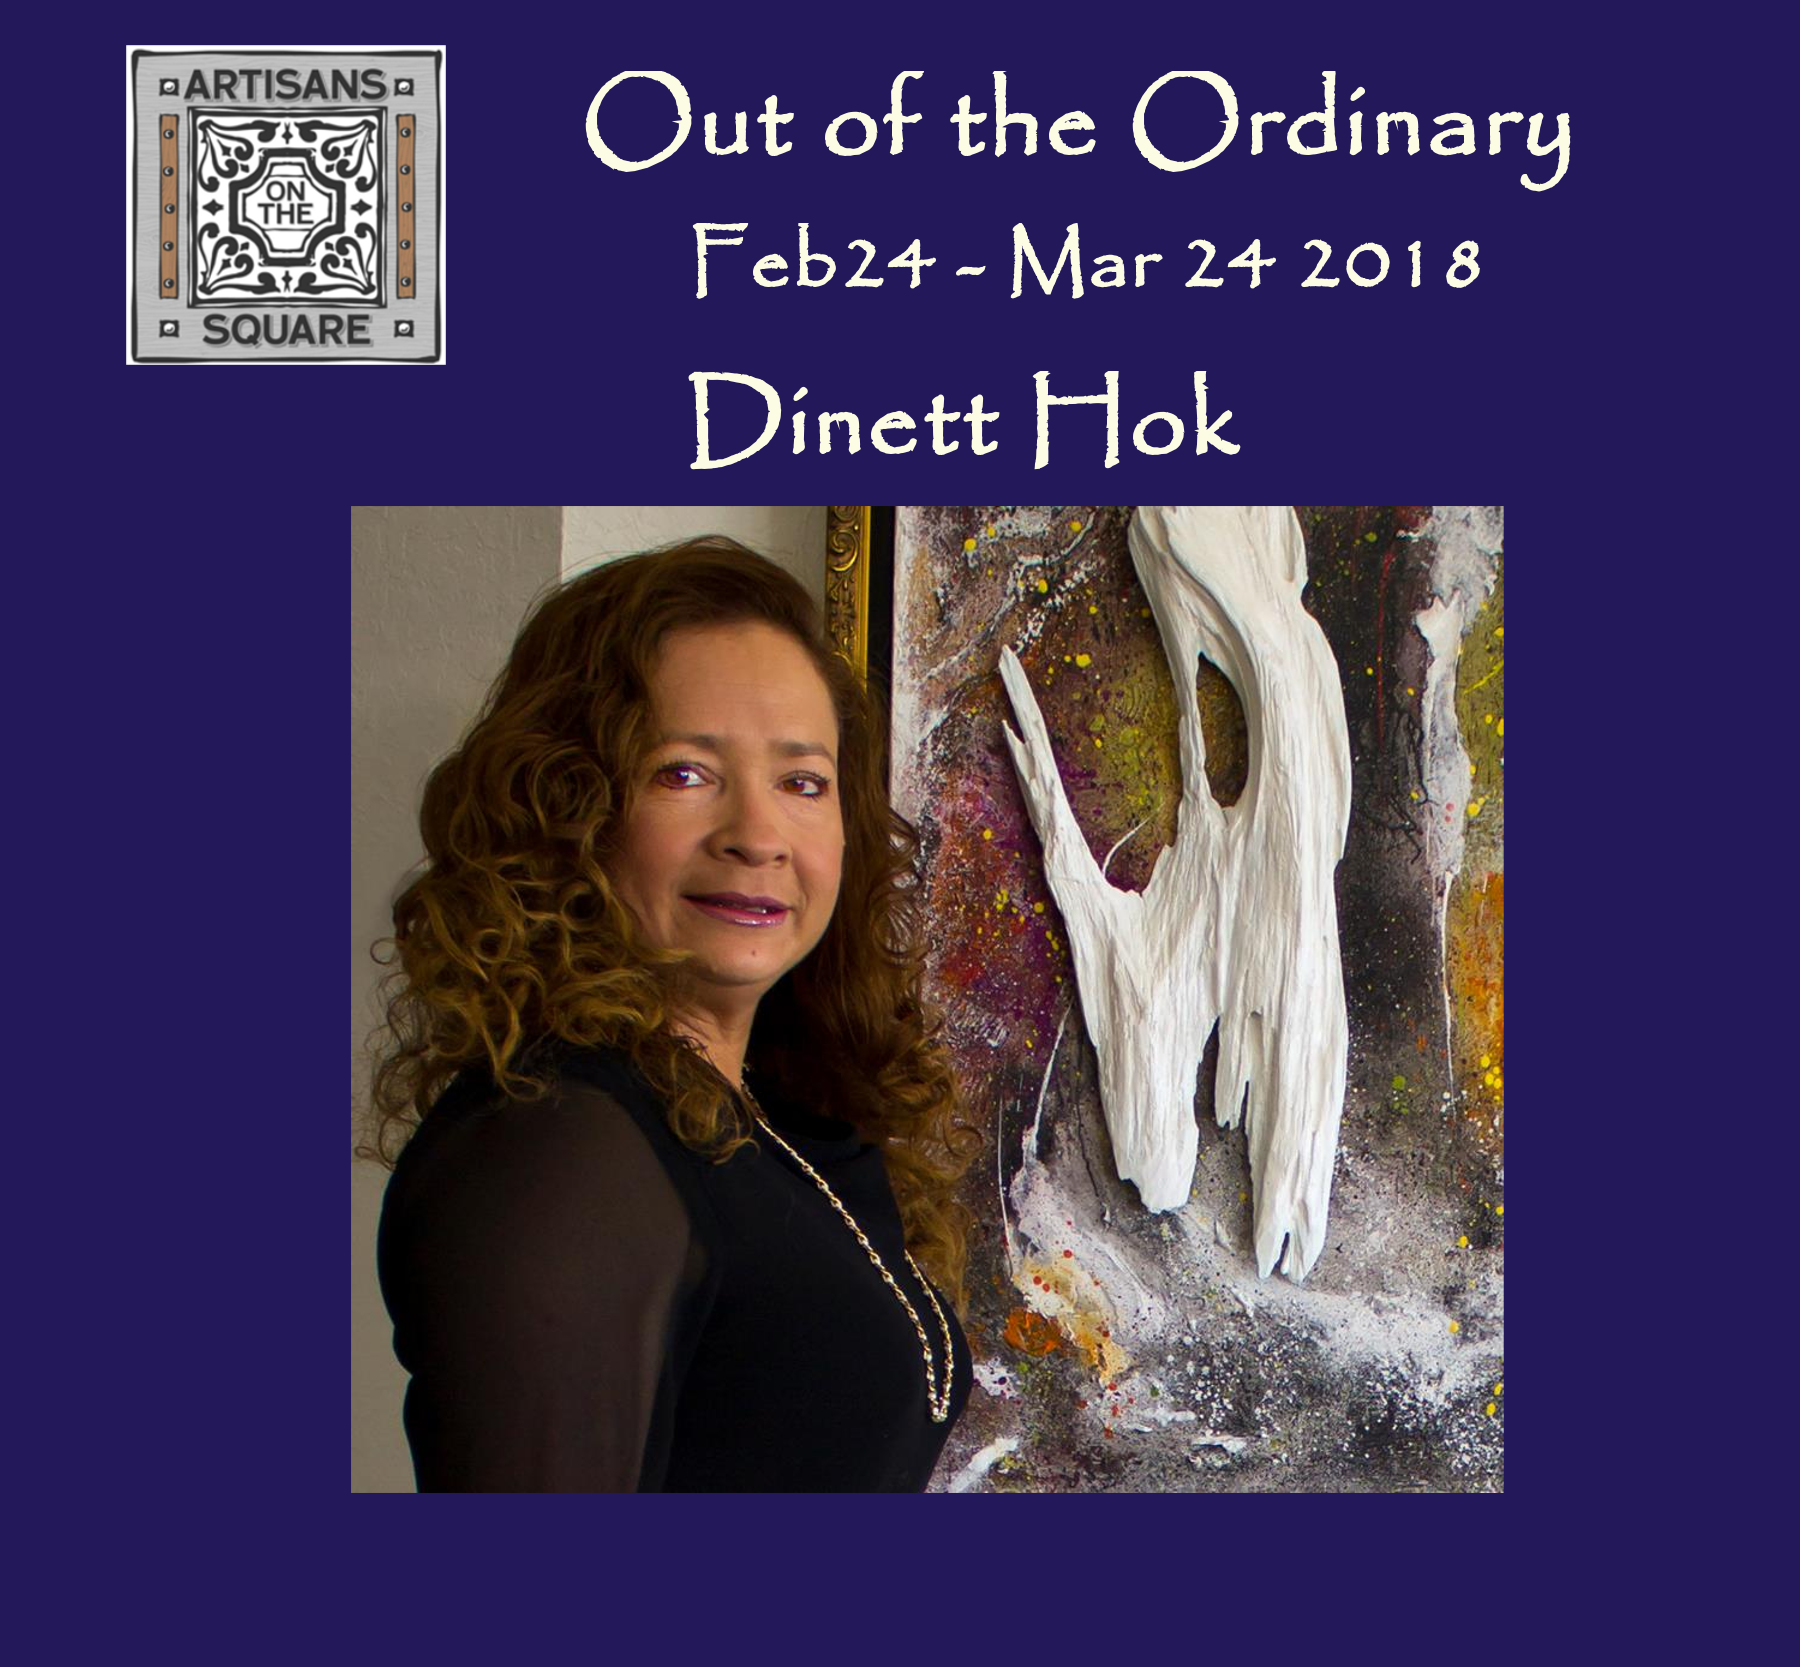 Out of the ordinary Dinett Hok